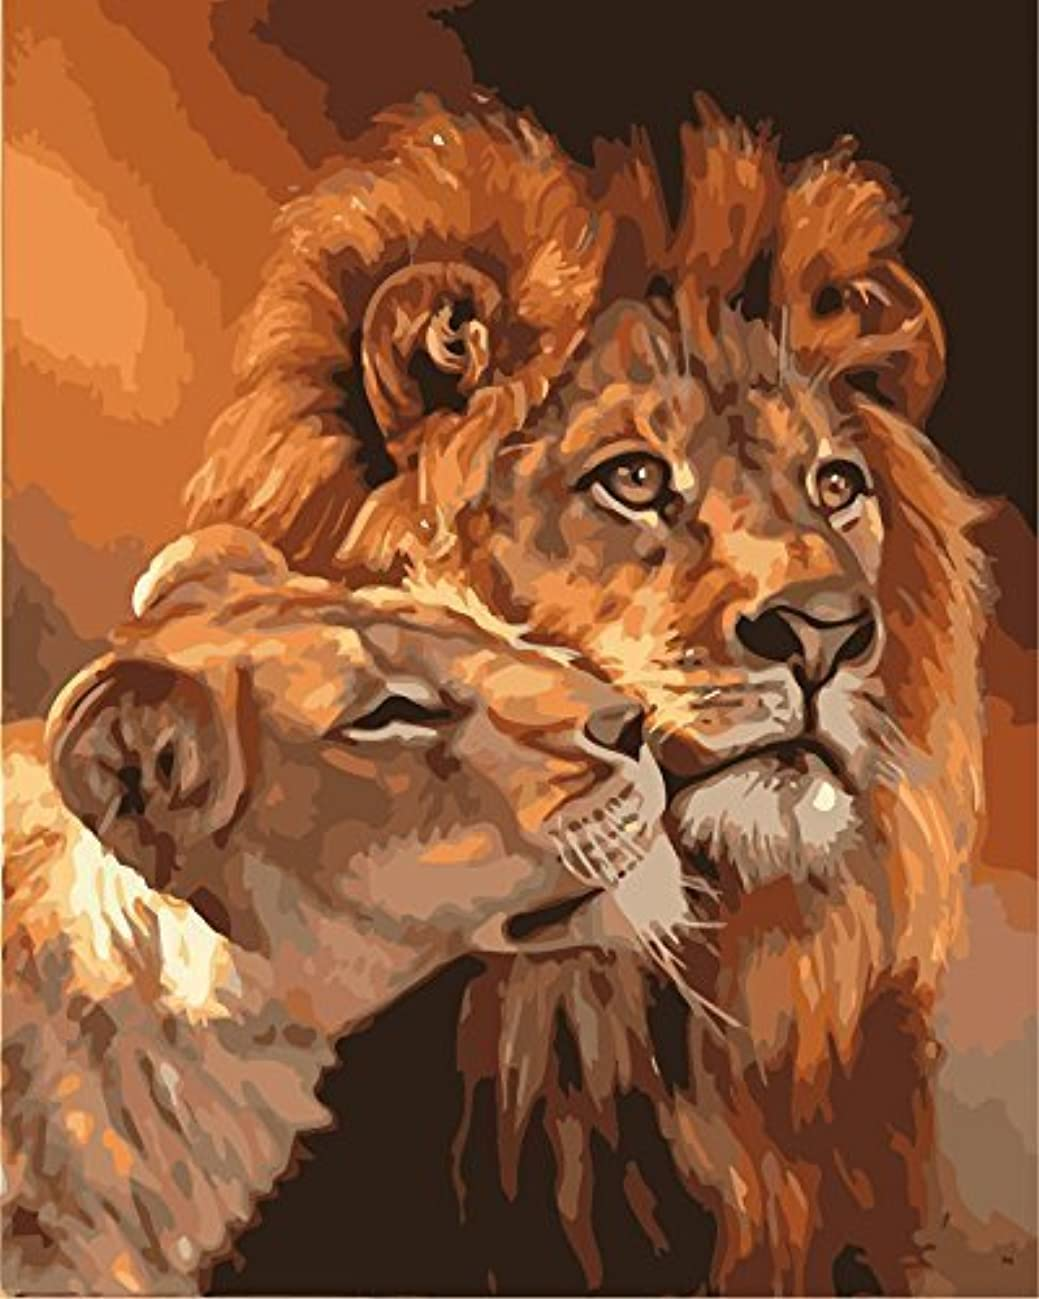 MailingArt Wooden Framed Paint by Number Animals No Blending / No Mixing Linen Canvas DIY Painting - Big and Small Lion King